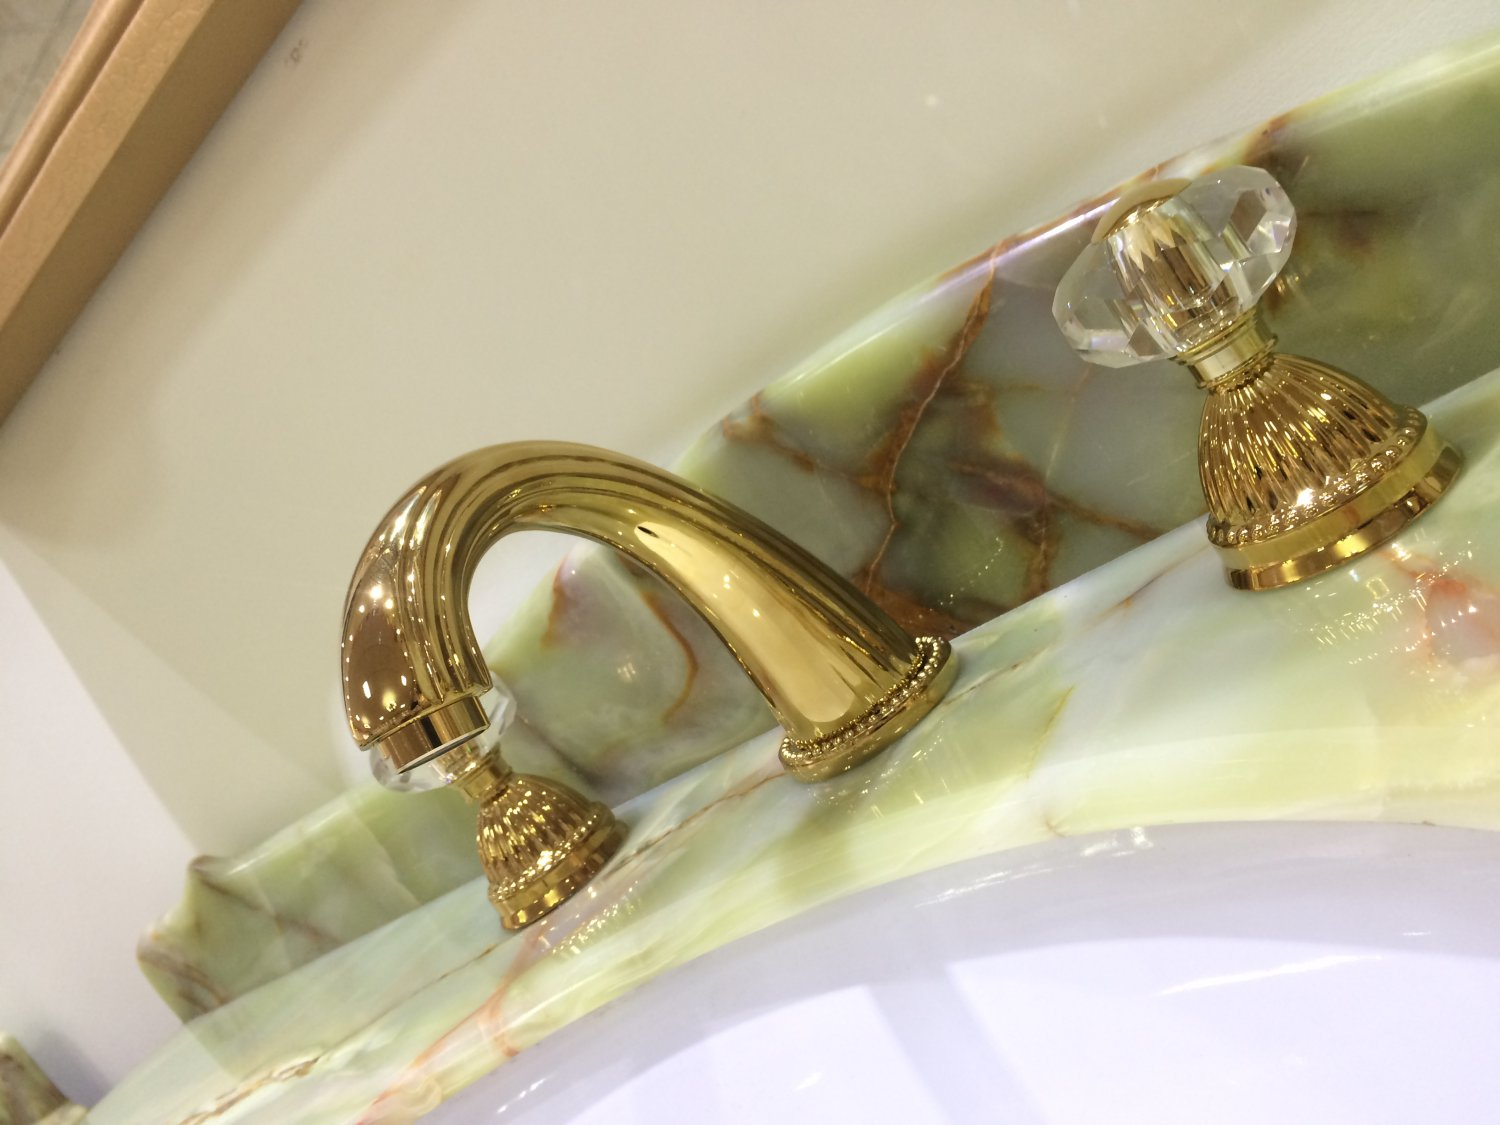 3 Holes widespread bathroom Lavatory Sink faucet Crystal handles Mixer tap Gold clour deck mounted